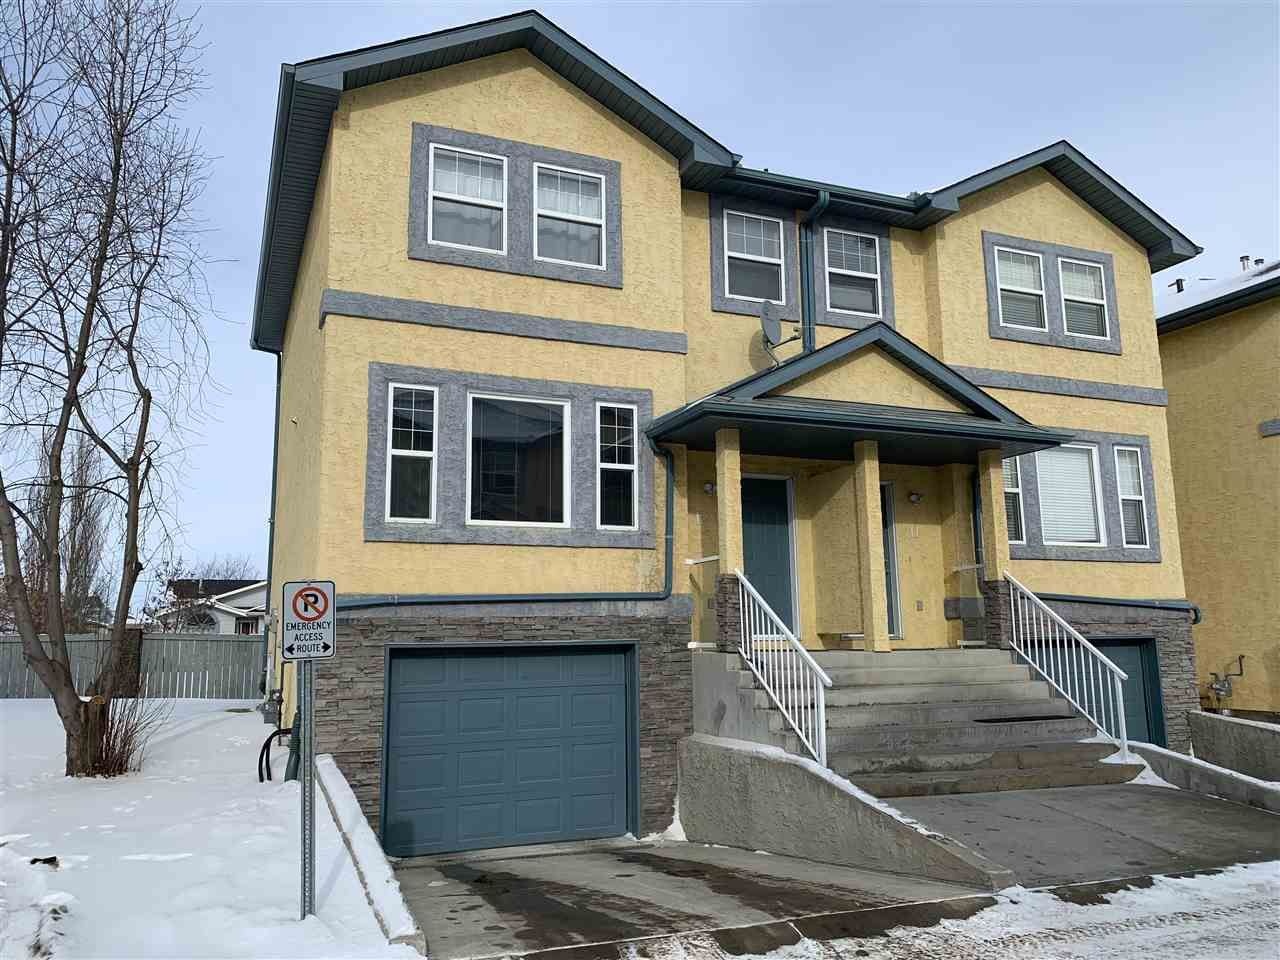 Main Photo: 12 16777 91 Street in Edmonton: Zone 28 Townhouse for sale : MLS®# E4229322